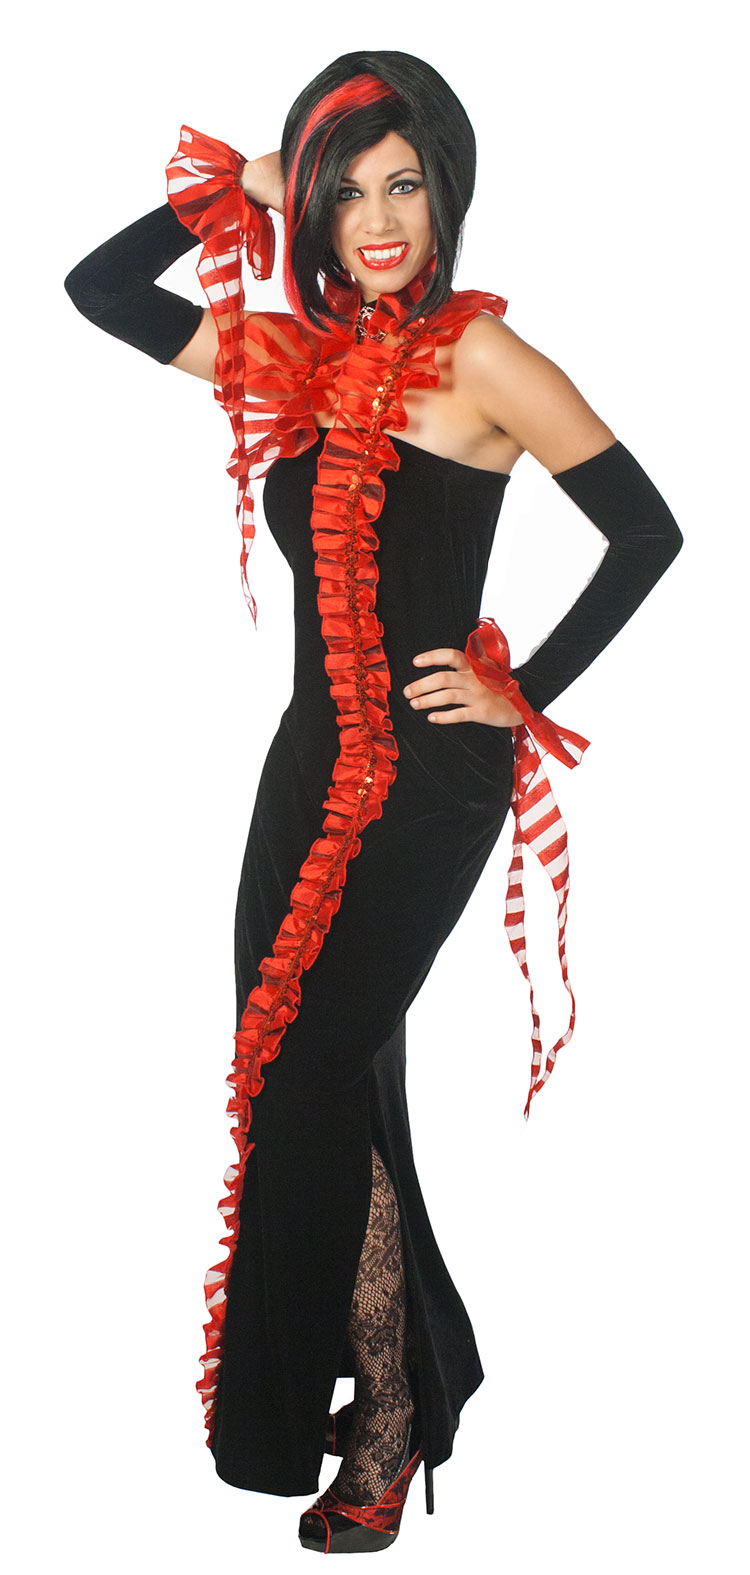 11026-Isolda-Vampire-Costume-large